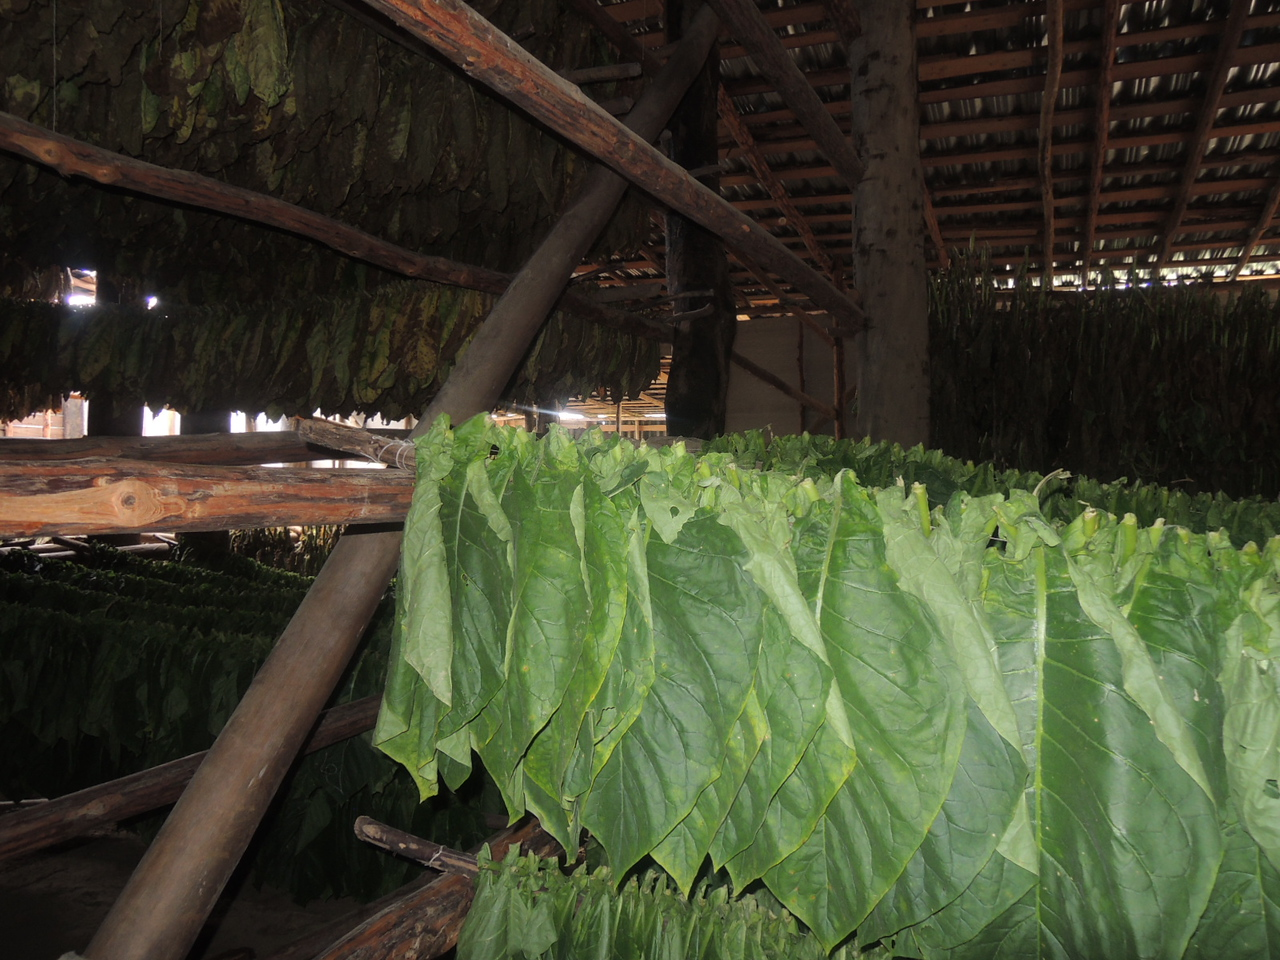 A better shot of tobacco drying in the barn.